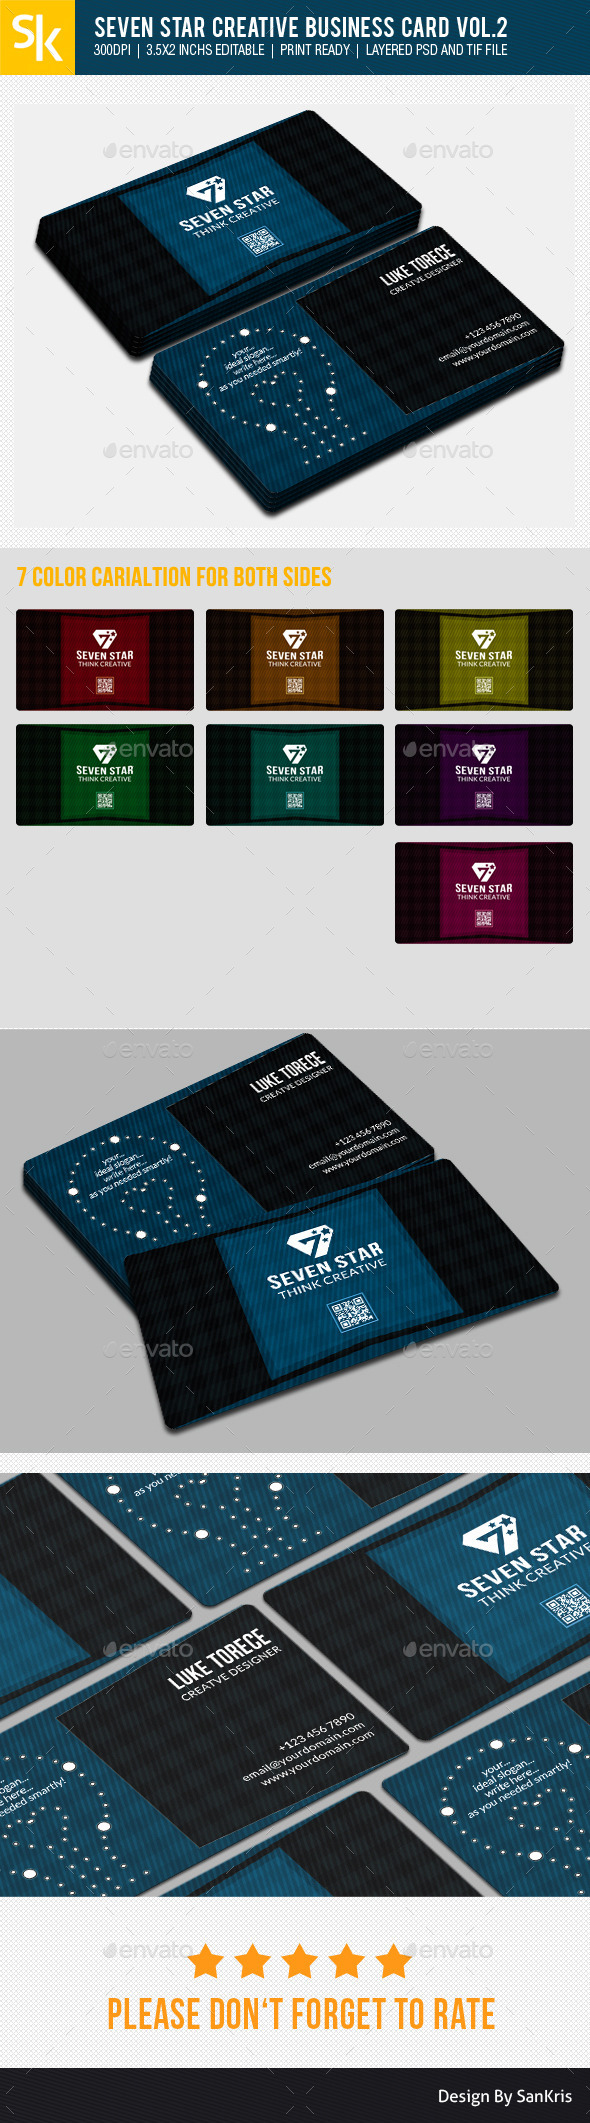 Seven Star Creative Business Card Vol.2 by Creative-Ocean | GraphicRiver